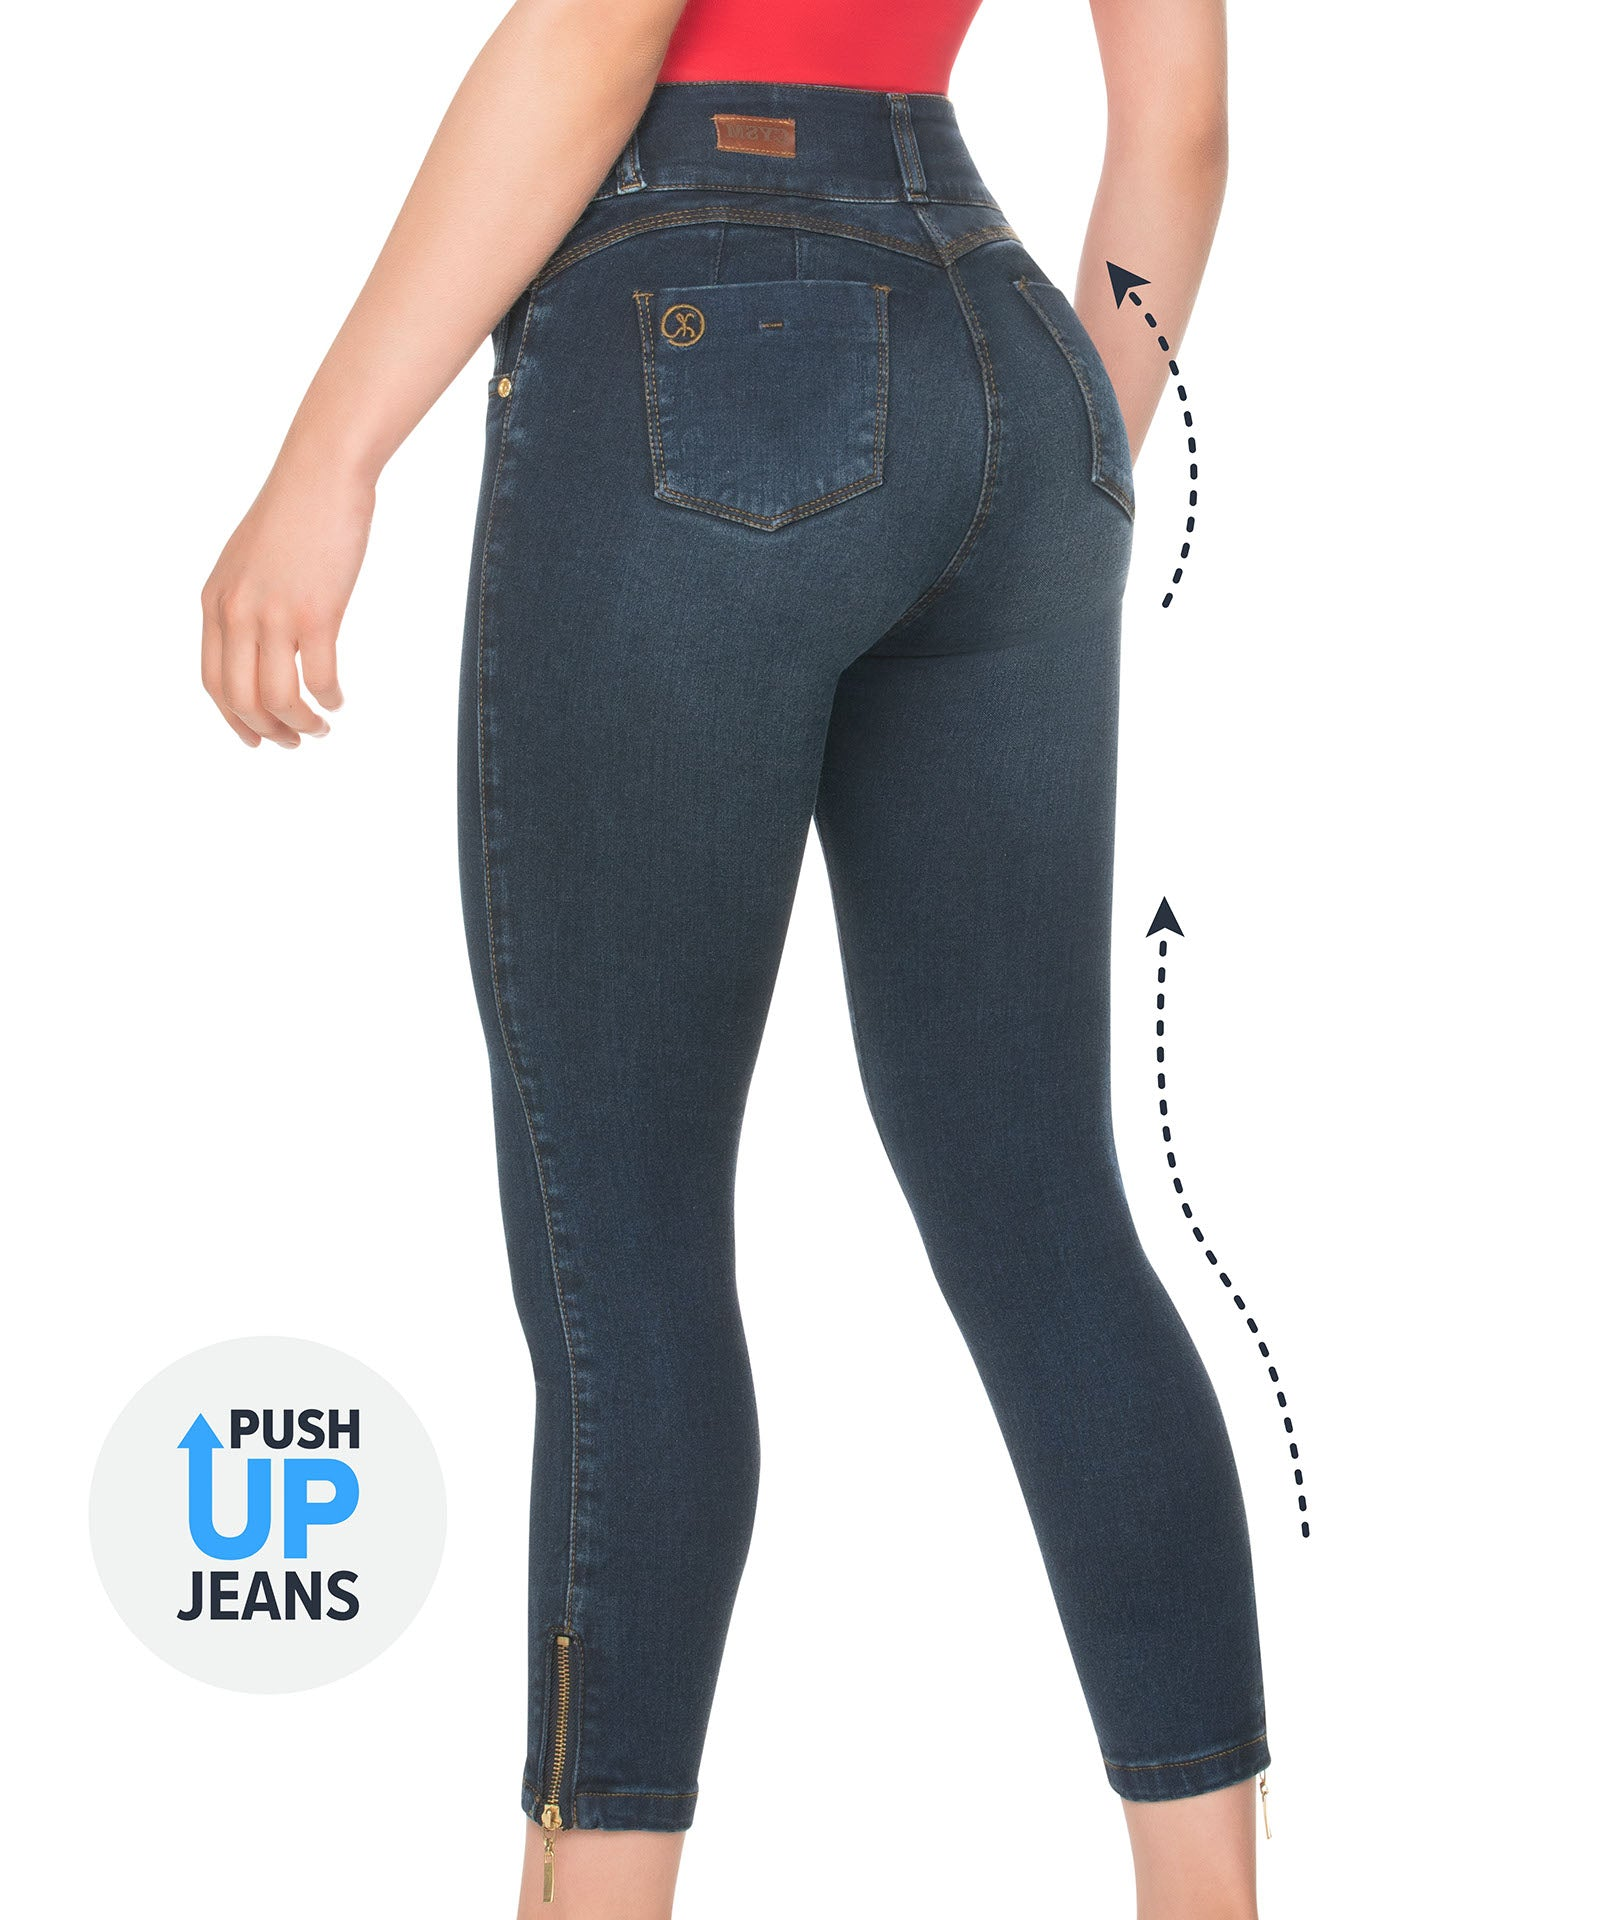 2032 - Push Up Jean by CYSM